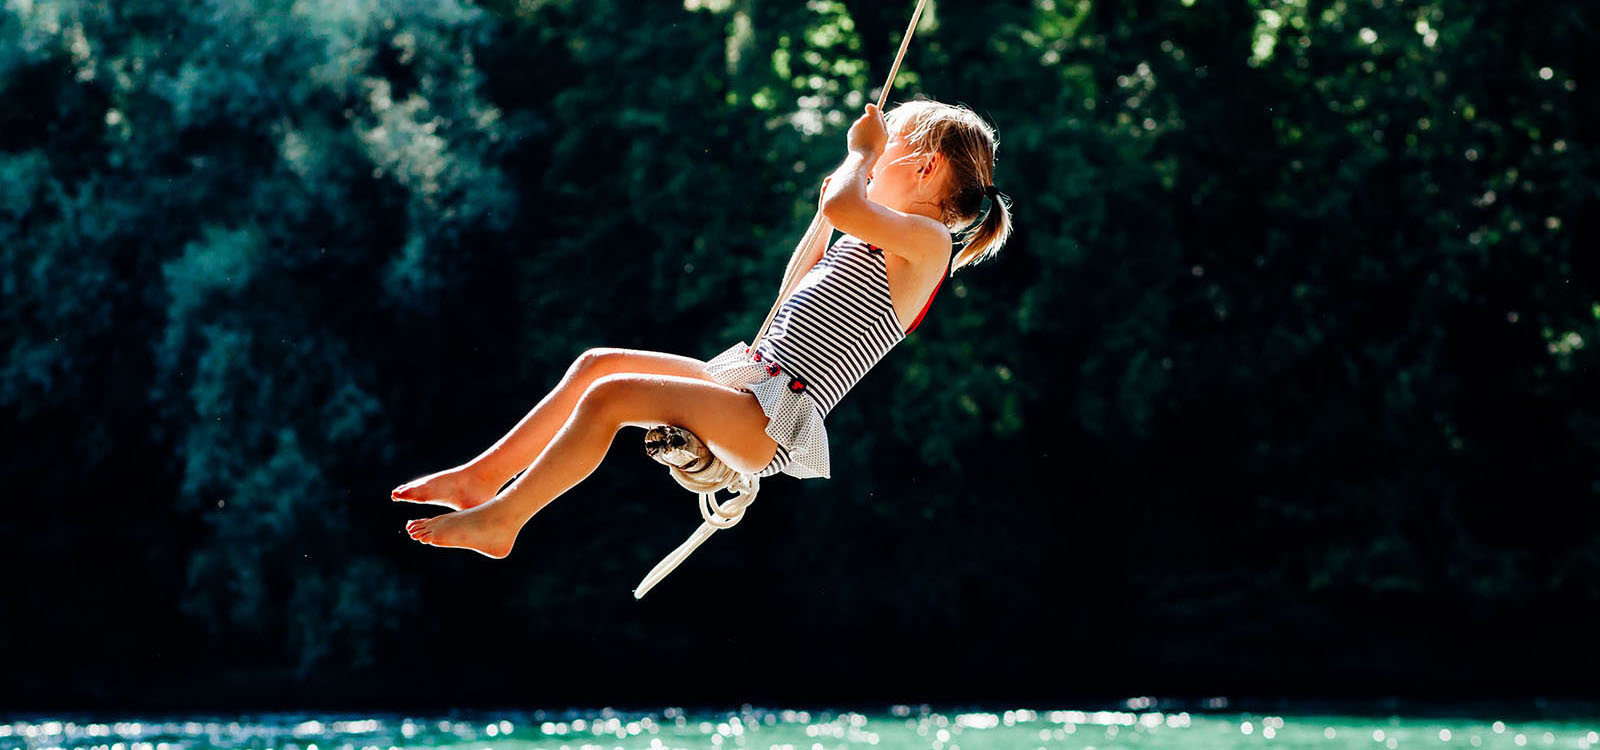 rope-swing-little-girl-2